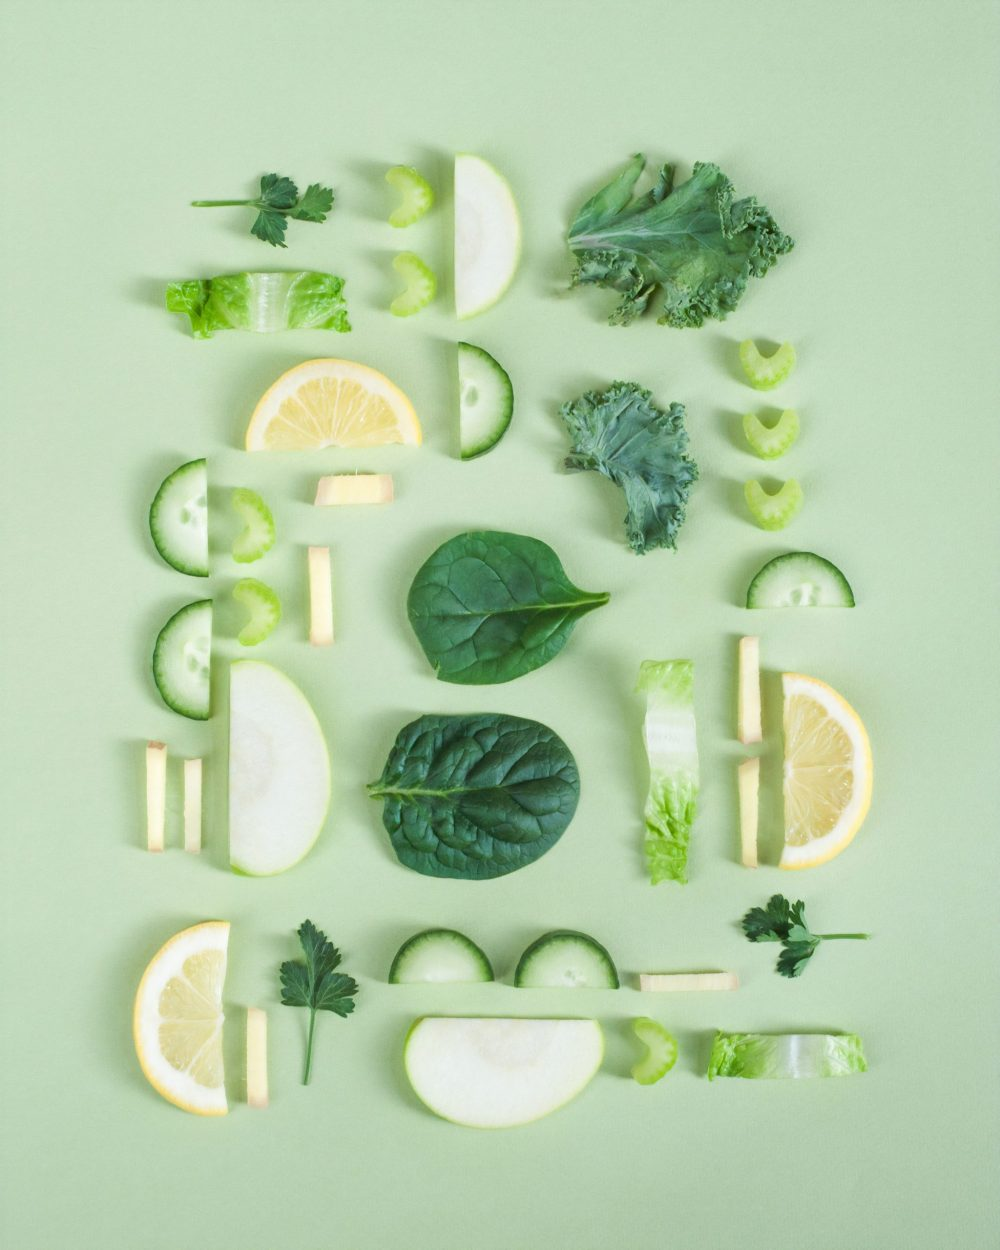 green cut open fruits and vegetables